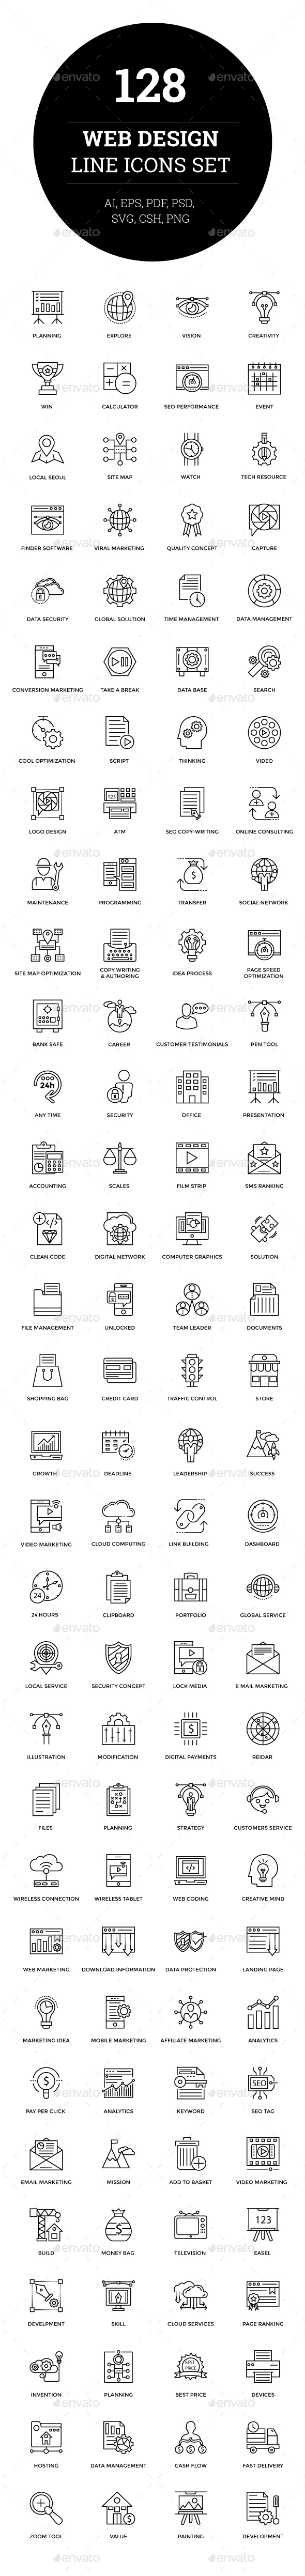 GraphicRiver 128 Web Design Line Icons 21107496